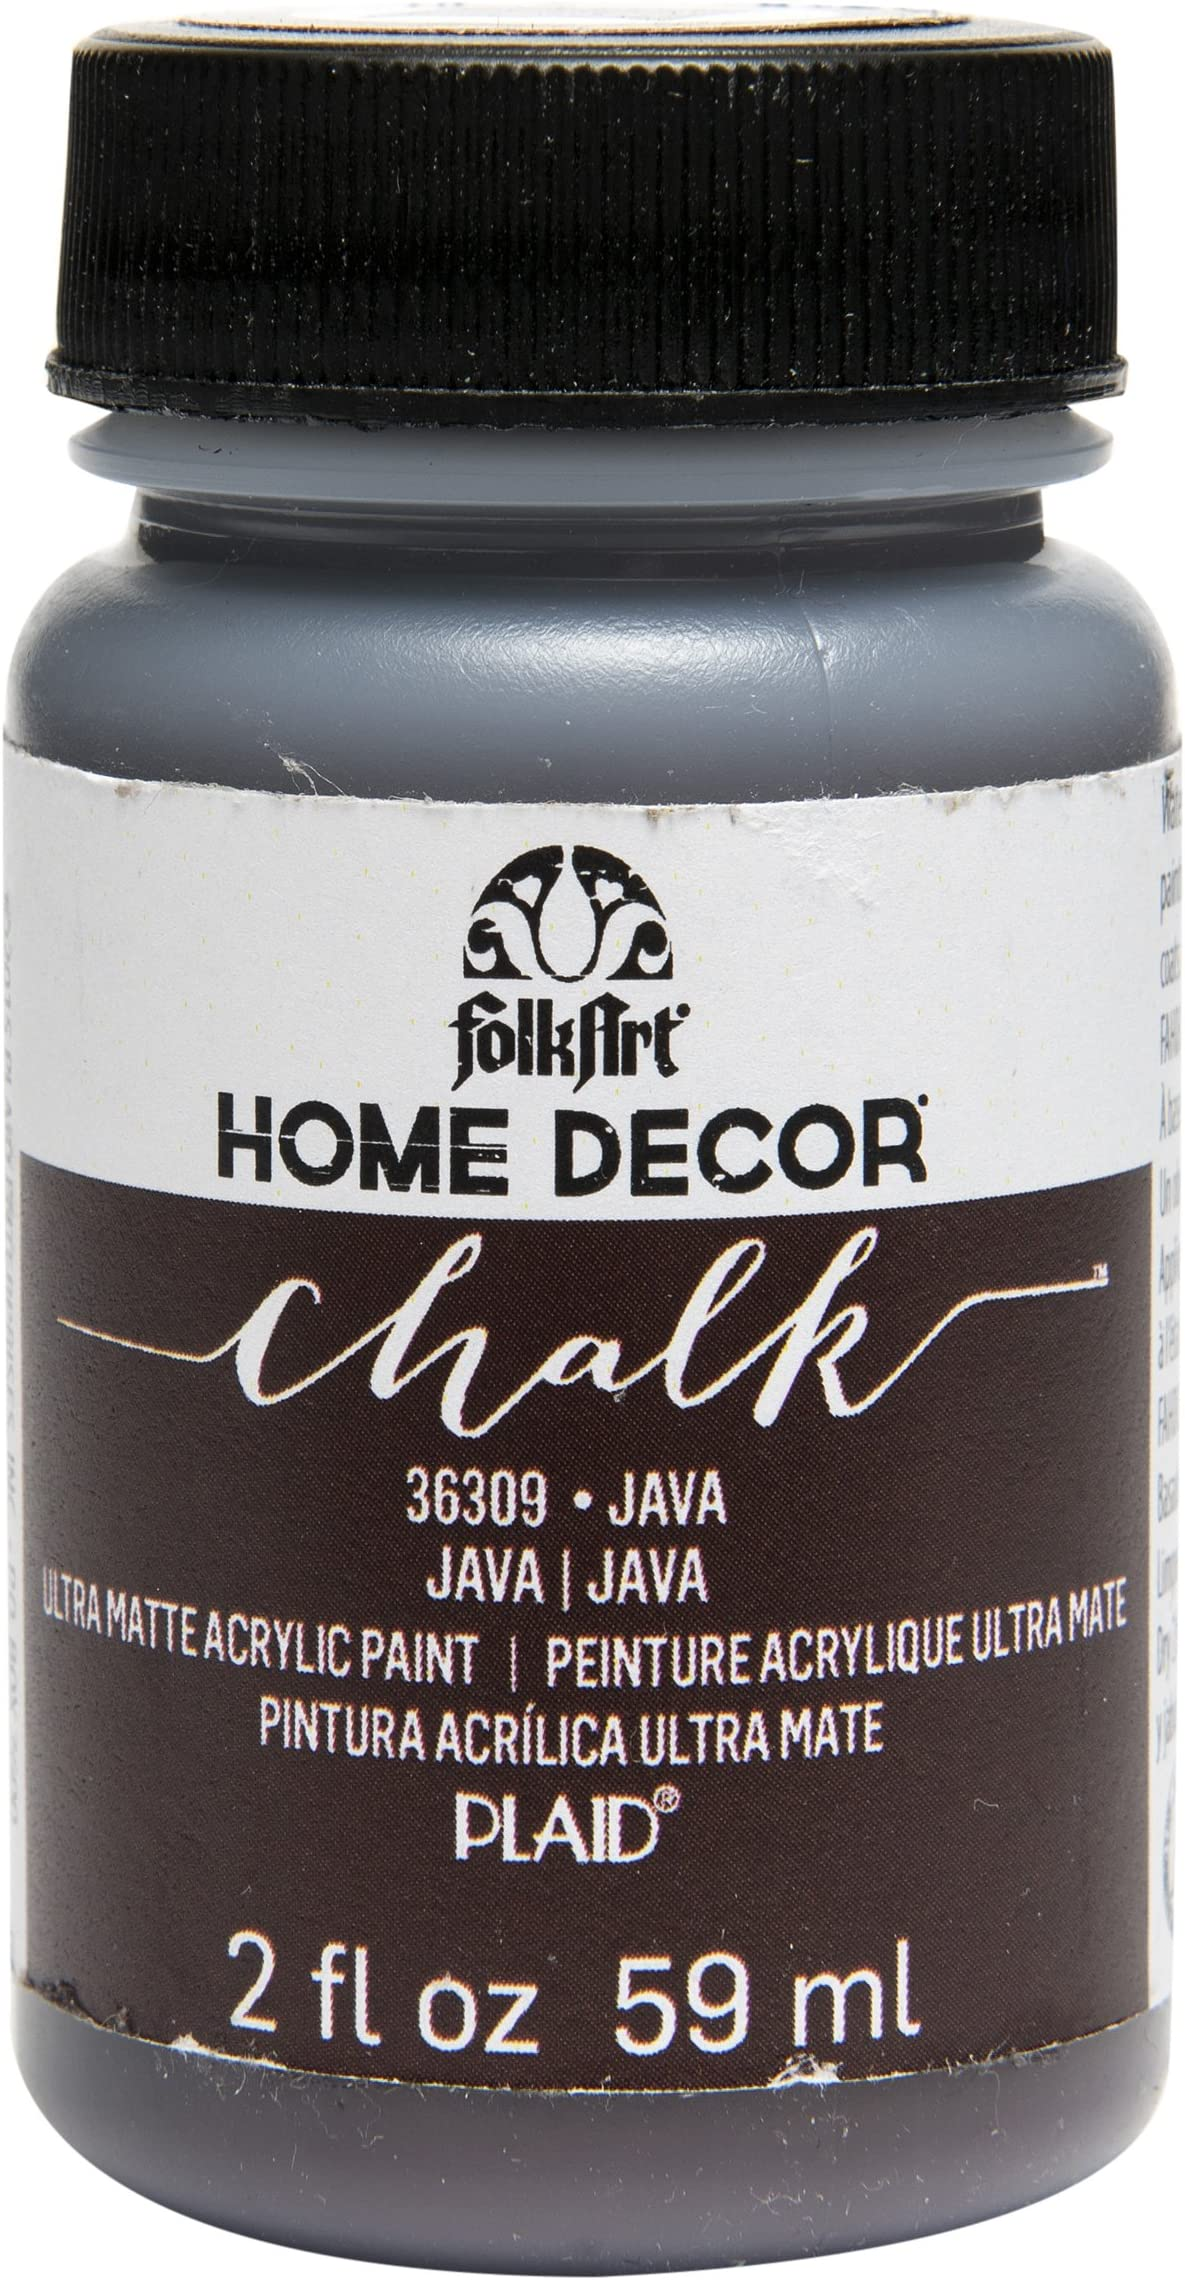 FolkArt 36309 Home Decor Chalk Furniture & Craft Paint in Assorted Colors, 2 ounce, Java